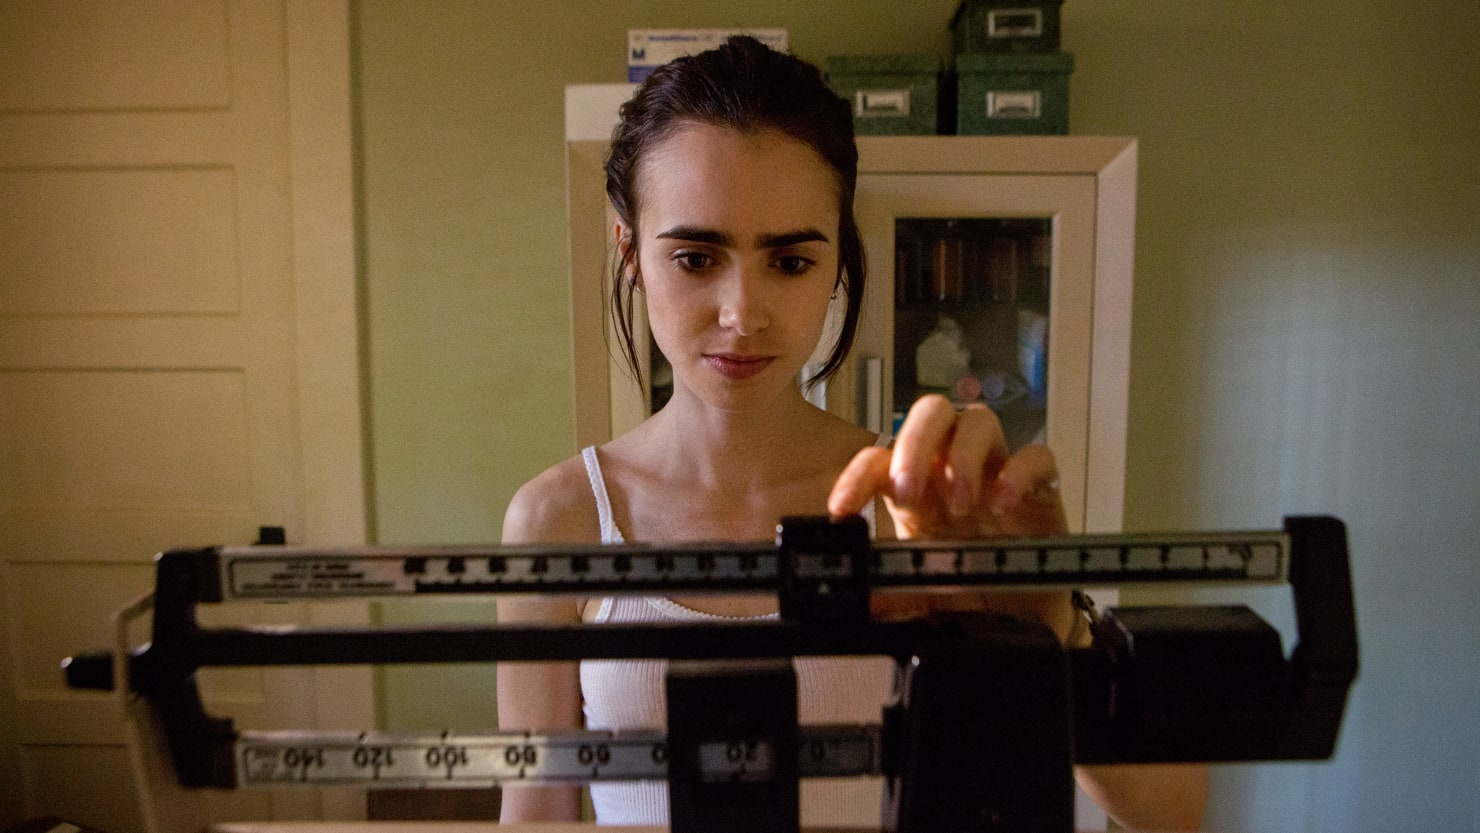 'to The Bone': Isflix's New Anorexia Film Dangerous?